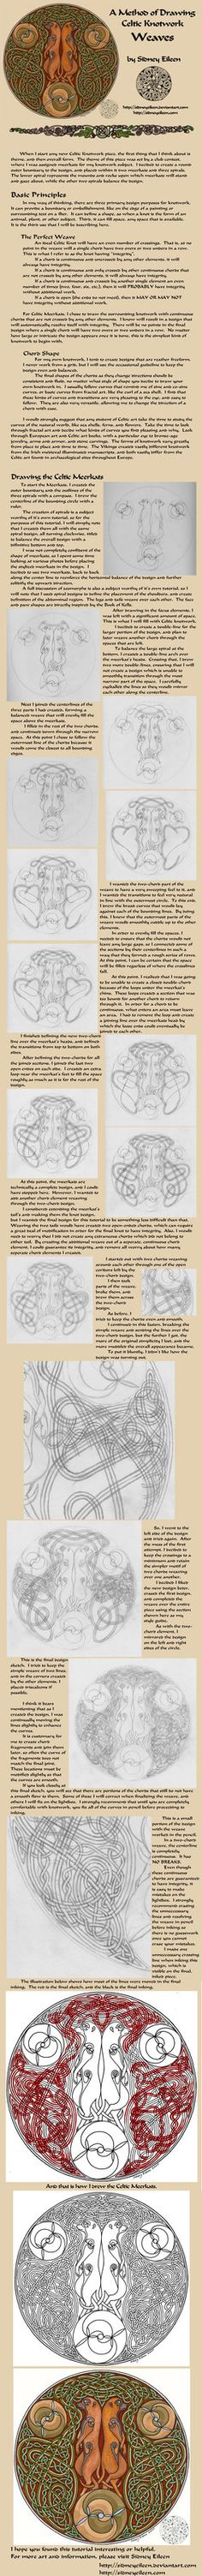 Drawing Celtic Knots - Weaves by =sidneyeileen on deviantART